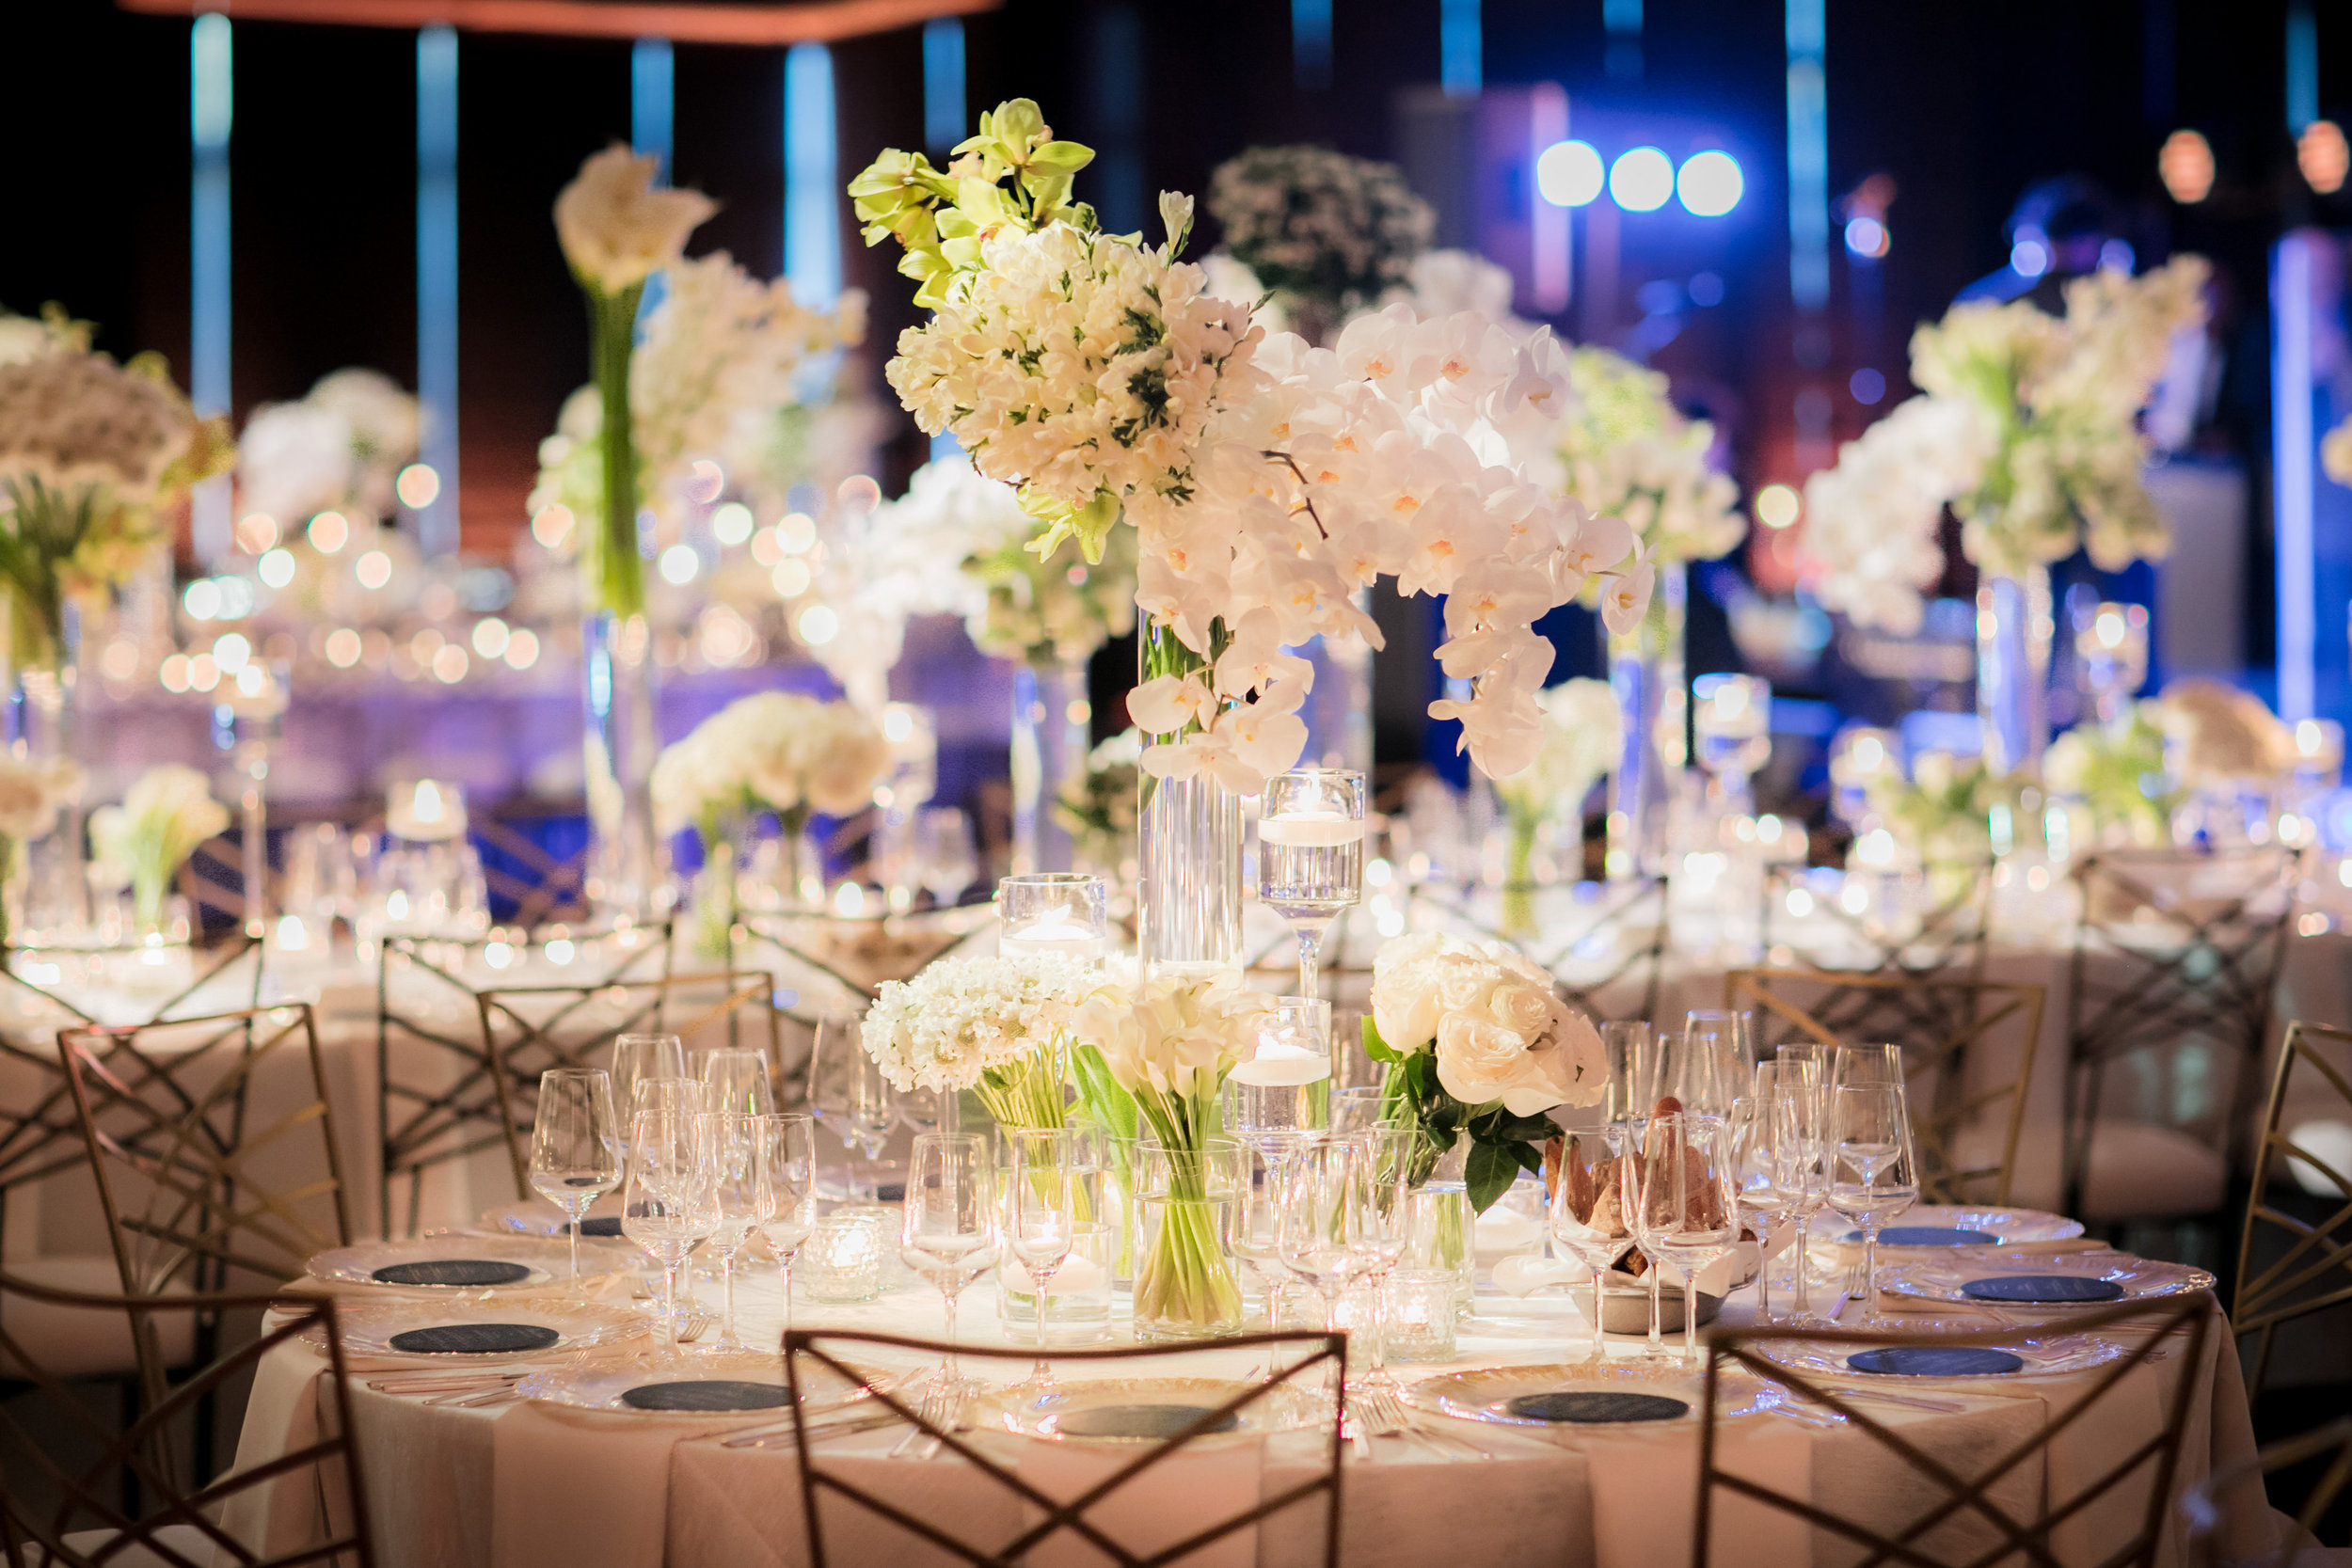 Andrea-Freeman-Events-NY-Wedding-Planner-Mandarin-Oriental-Wedding-11.jpg